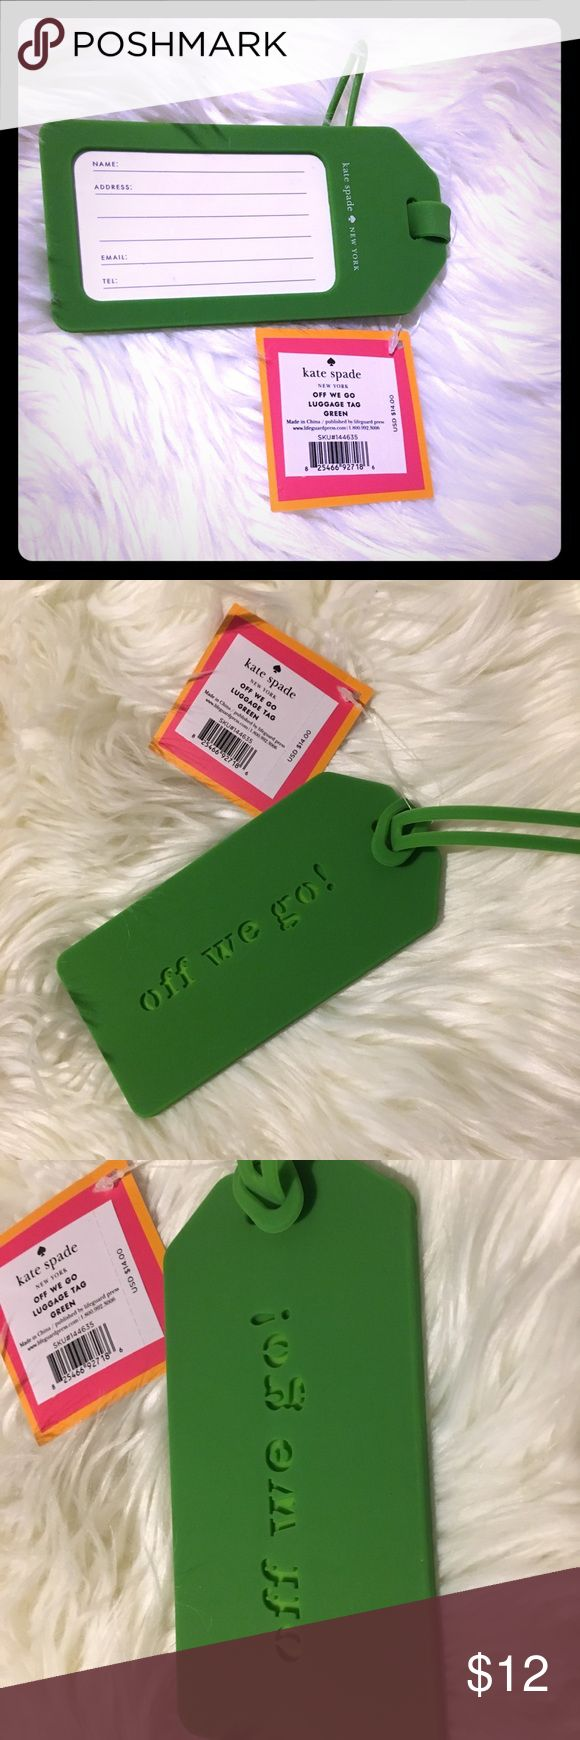 """NWT Authentic Kate Spade luggage tag Authentic Kate Spade luggage tag """"off we go!"""" Green, rubber luggage tag by Kate Spade New York. Travel in style and find your luggage easily with this brightly colored travel accessory! kate spade Other"""